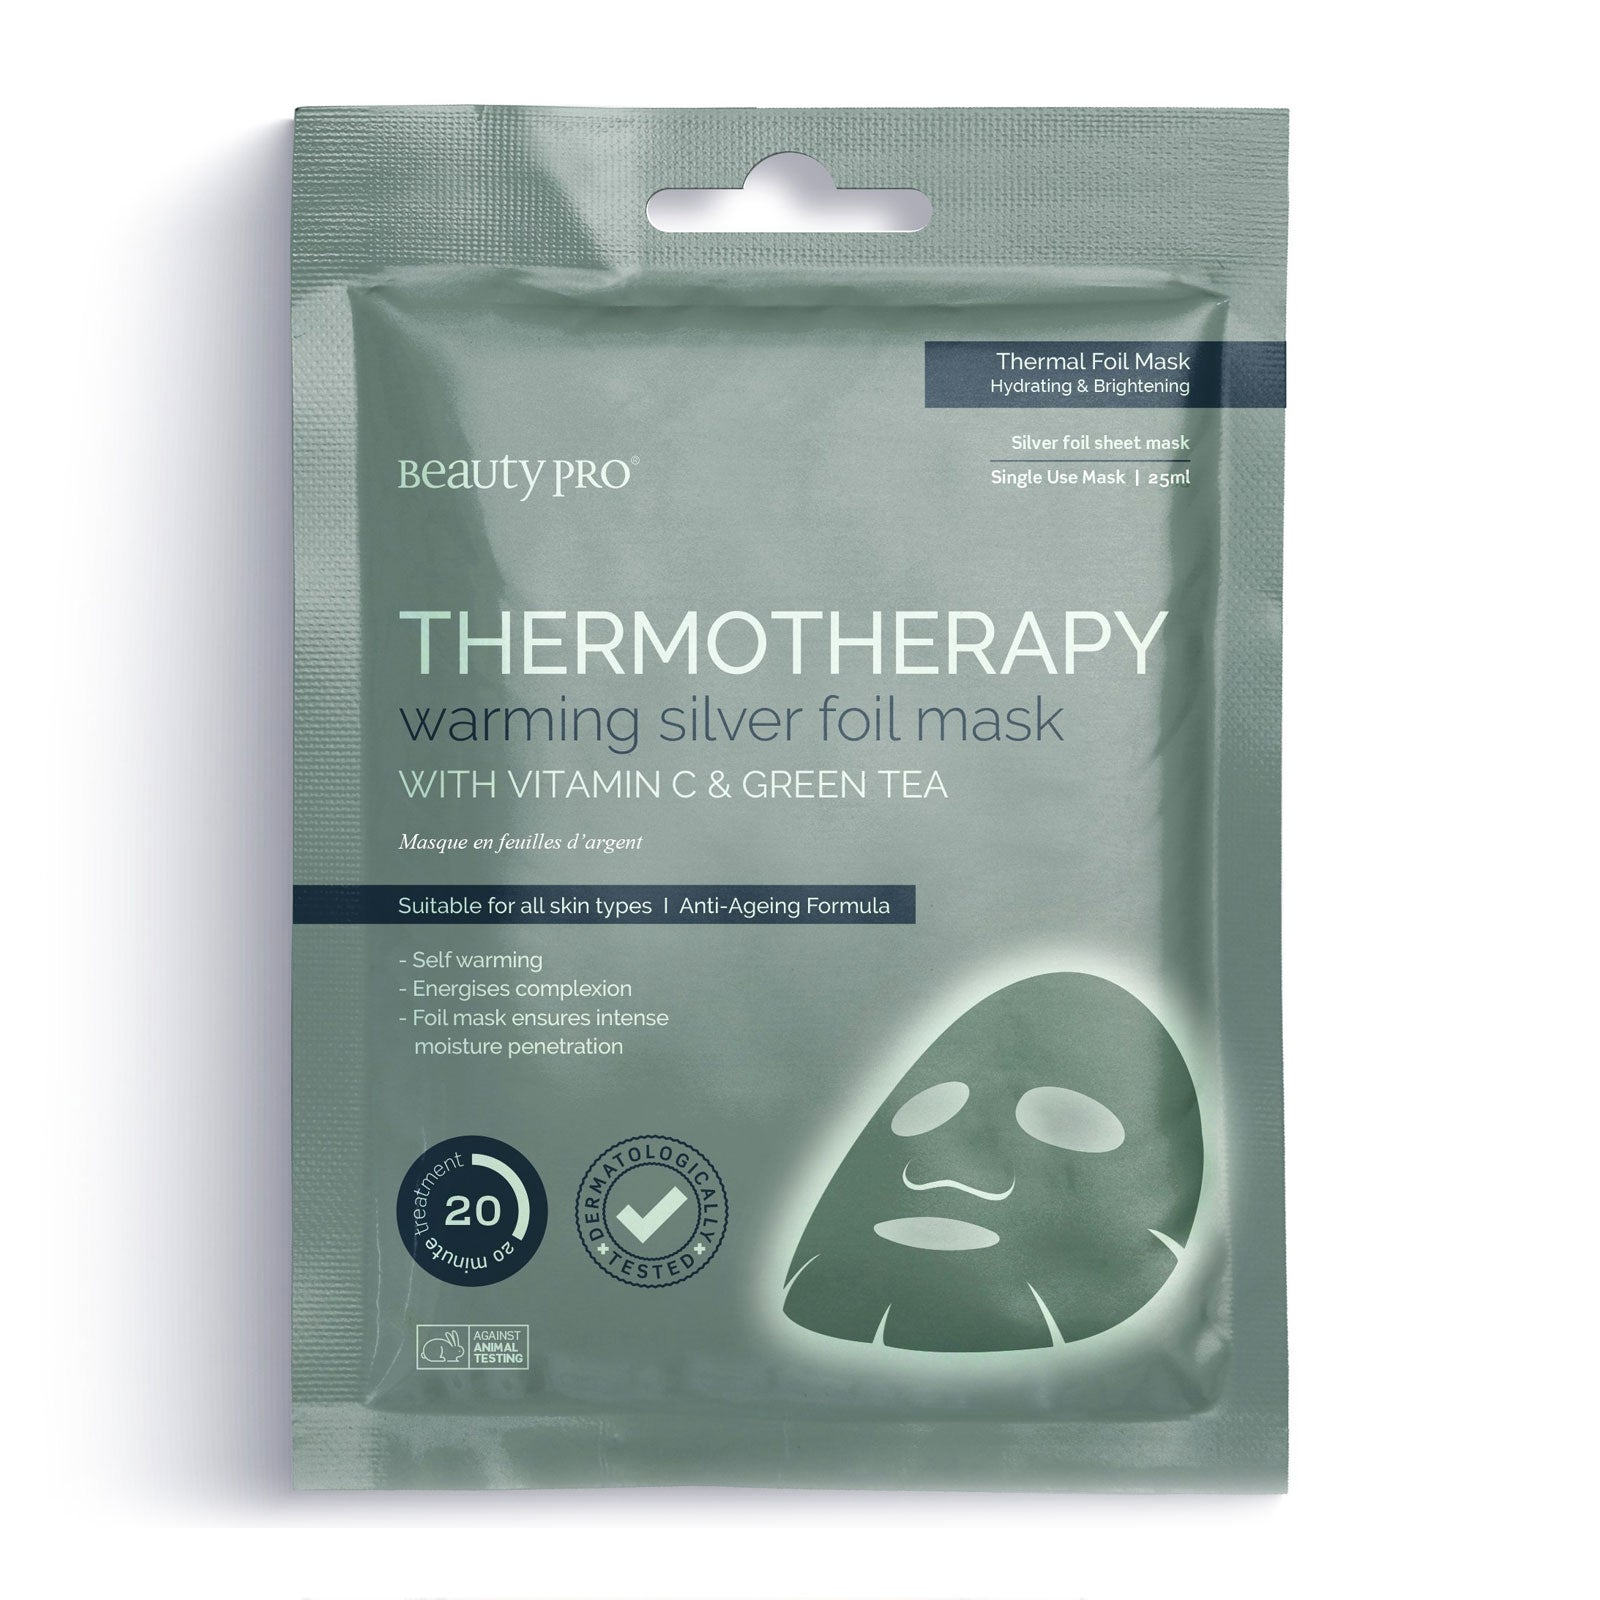 BeautyPro THERMOTHERAPY Warming Silver Foil Mask with Vitamin C & Green Tea 25ml